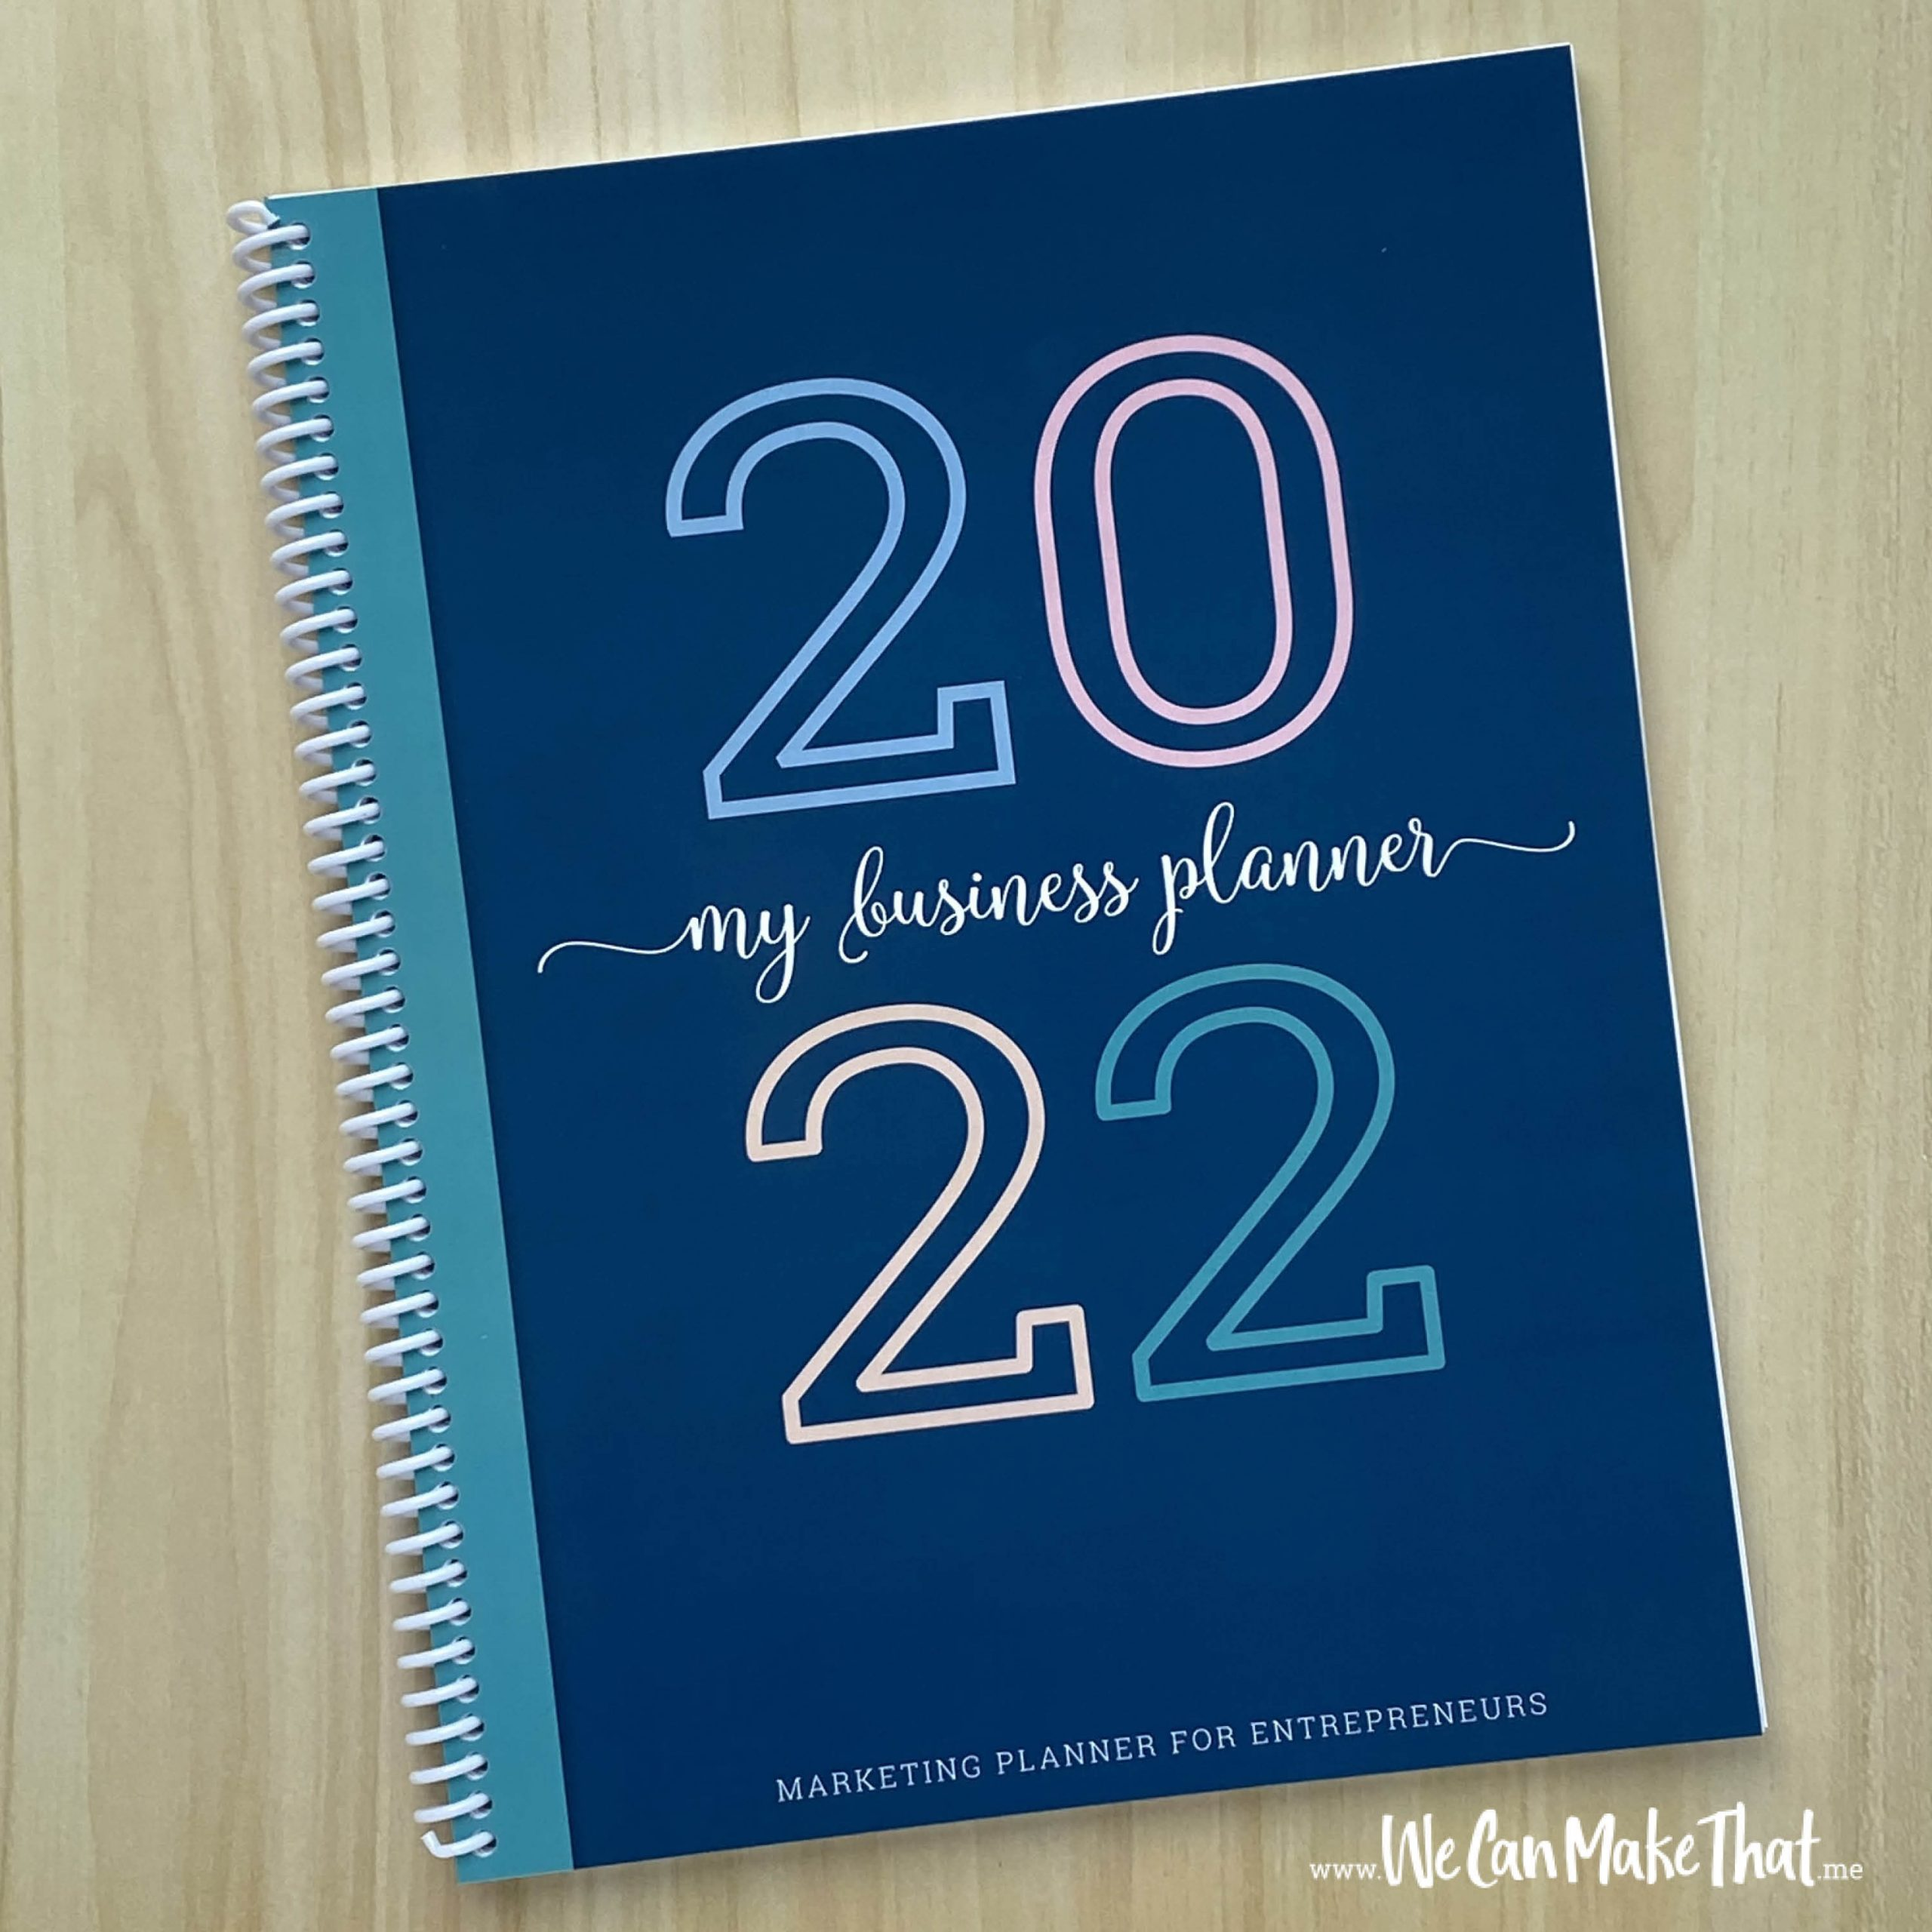 2022 small business planner